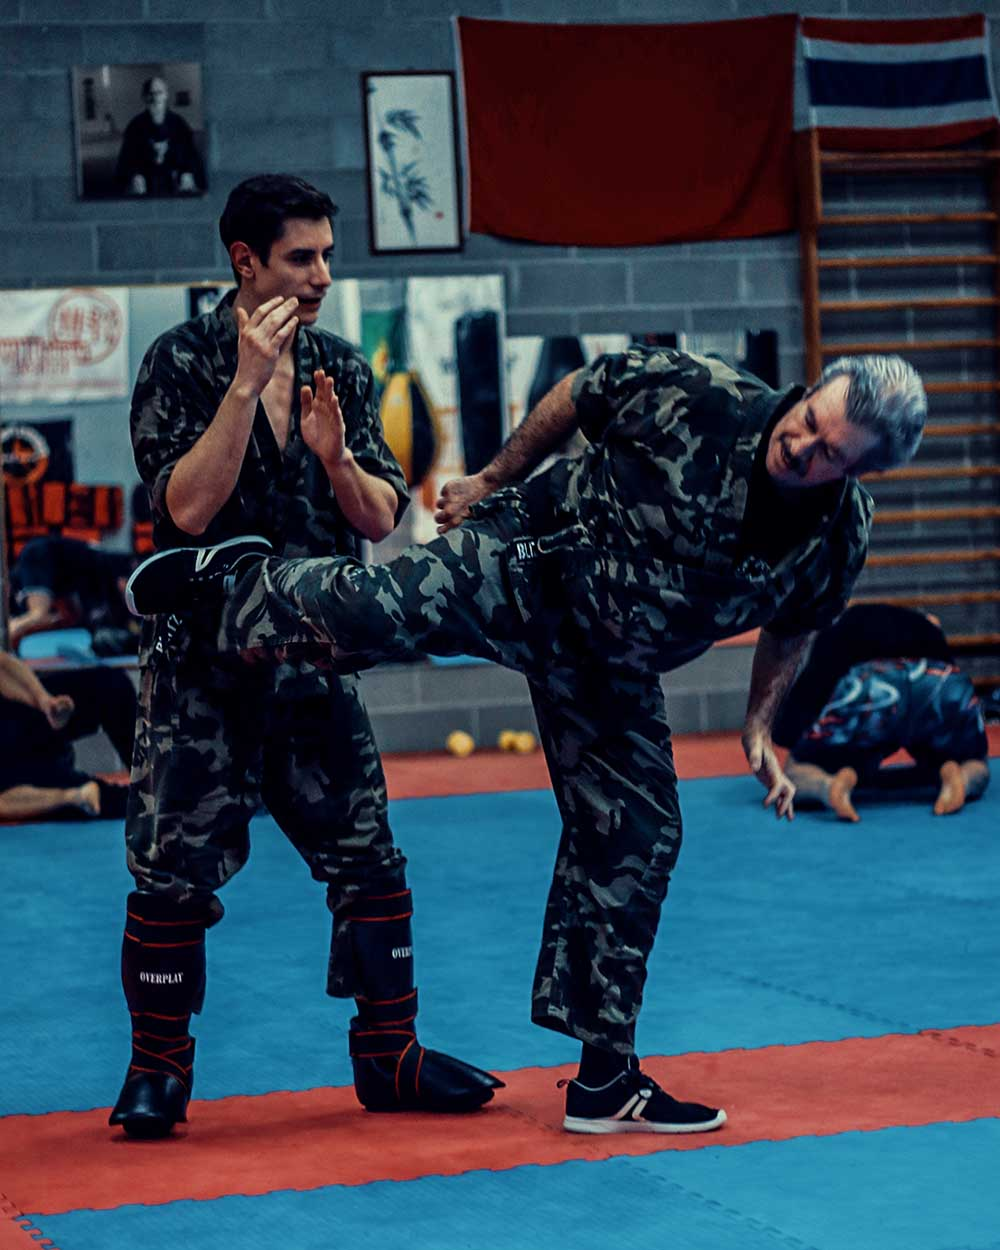 Krav Maga Training spinning back kick | FOTO | PHOTOS